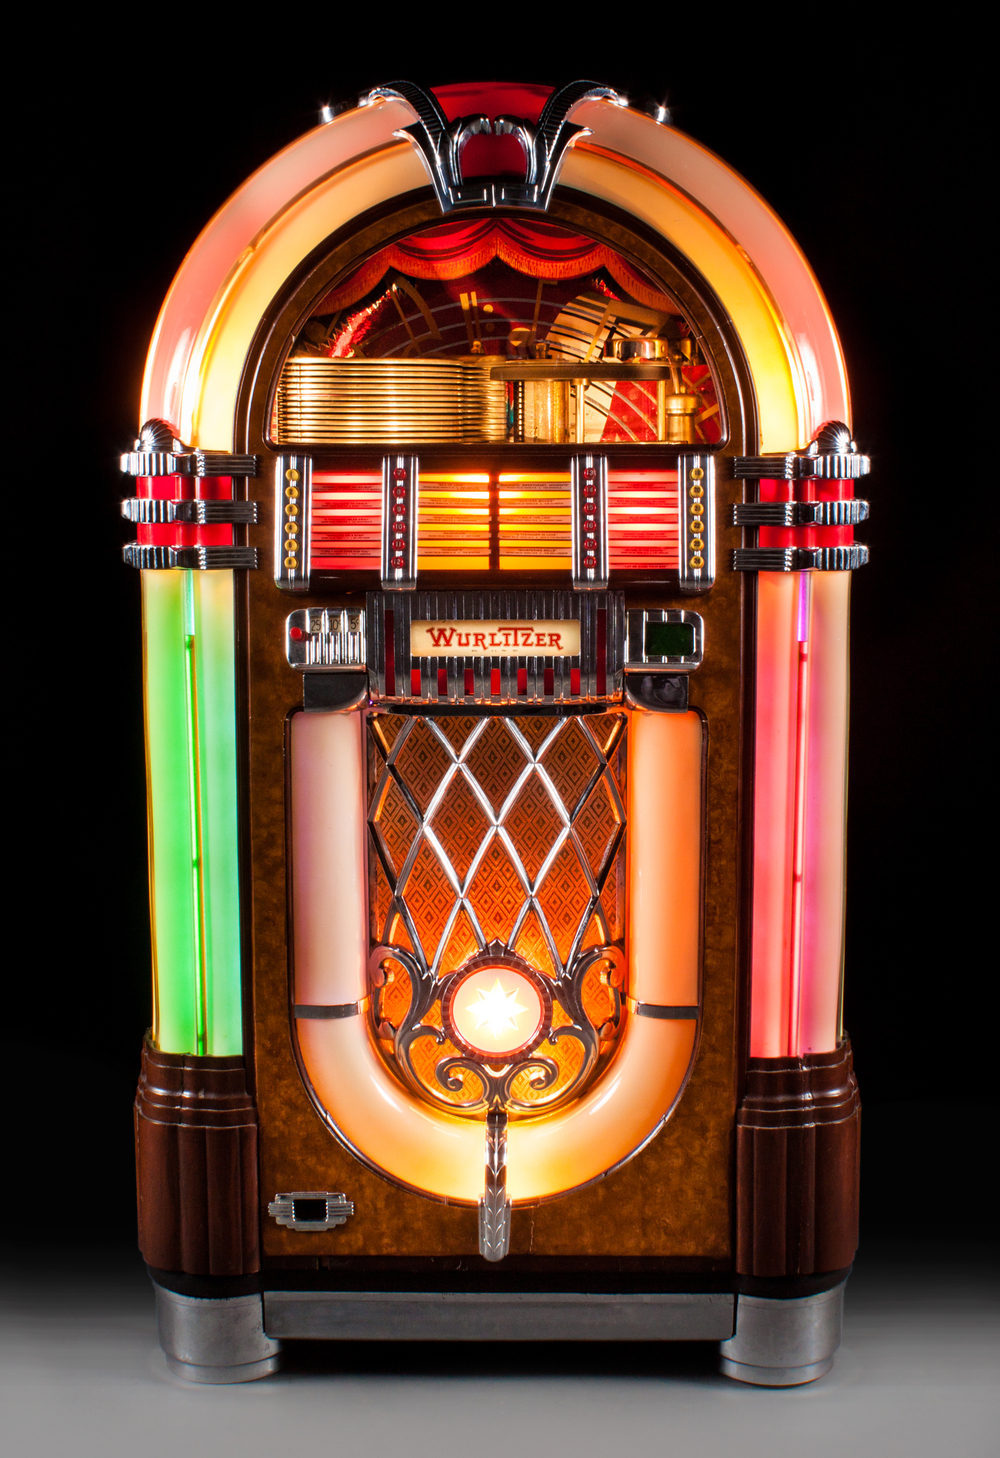 Wurlitzer Model 1015 Juke Box